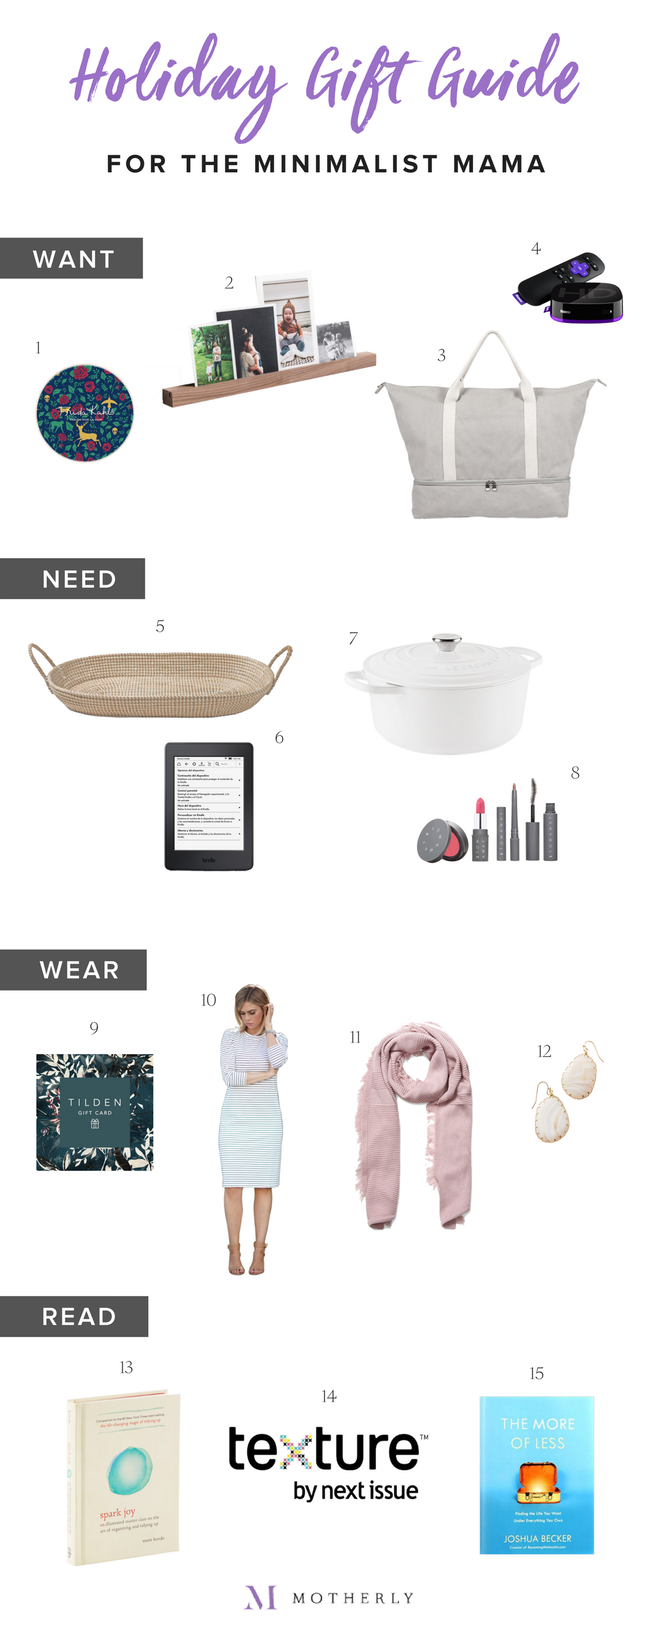 holiday gift guide 2017 15 simple beautiful gift ideas for the minimalist mama motherly sometimes less really is more